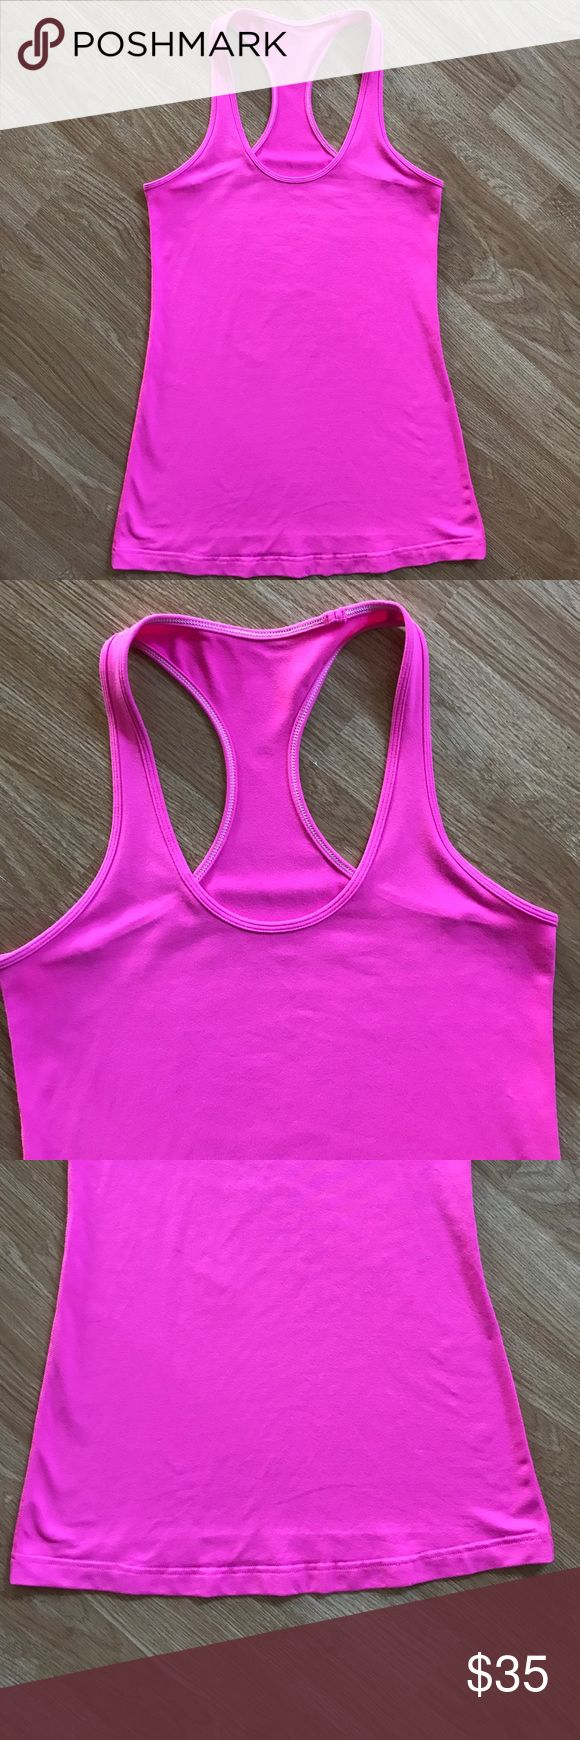 "Lululemon Cool Racerback Size 8 Like new, in excellent condition cool racerback tank. Size tag is removed but it is a size 8. Color is Pinkelicious.  True color is like the stock photos! Armpit to armpit measures 15"", length is 26"" lululemon athletica Tops Tank Tops"